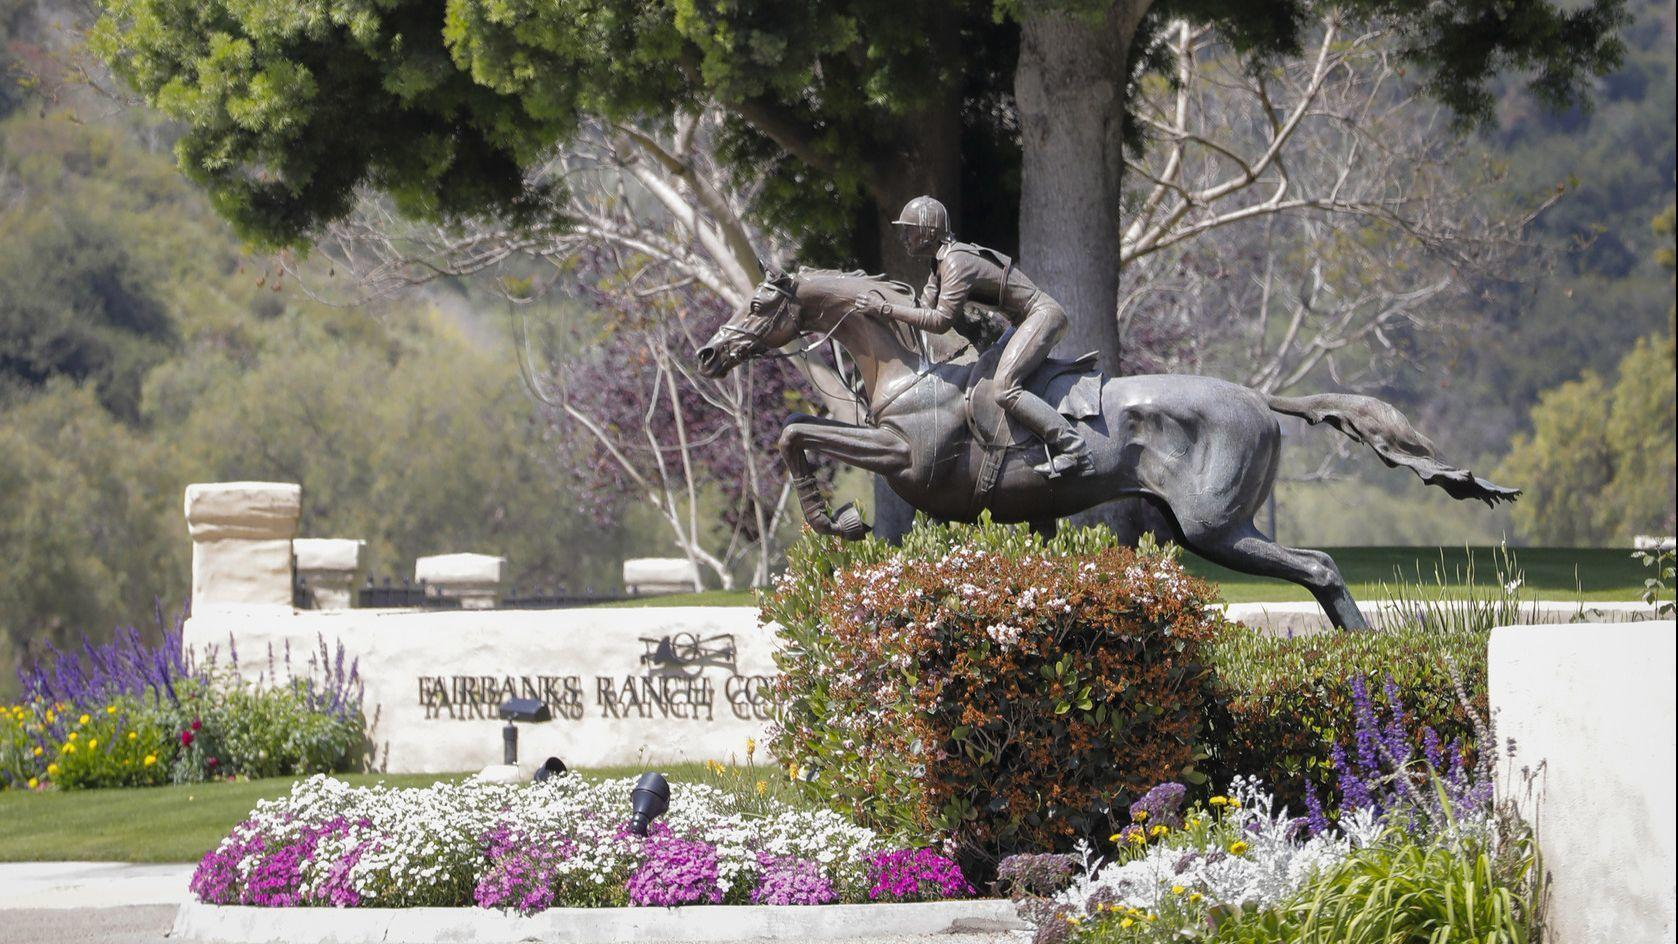 Lawsuit alleges widespread sexual harassment of workers at Fairbanks Ranch Country Club - The San Diego Union